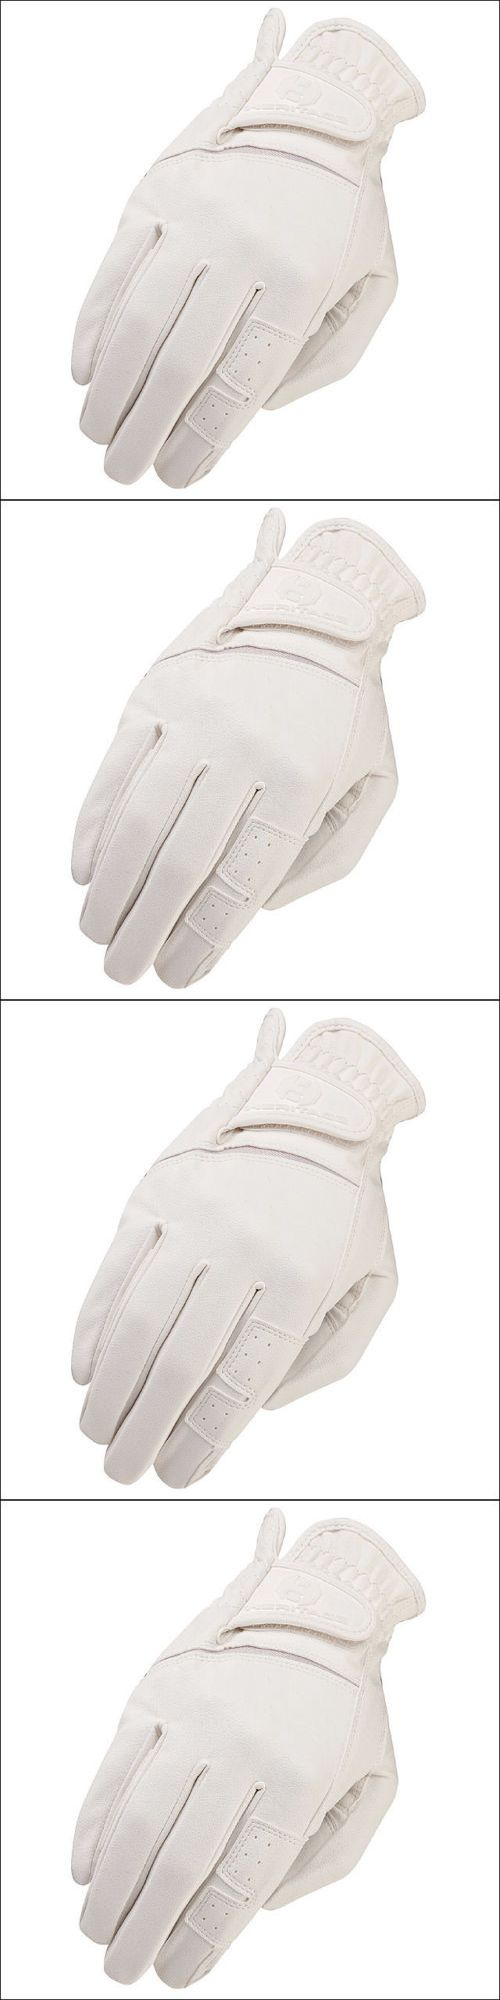 Ladies leather horse riding gloves - Riding Gloves 95104 06 Size Heritage Gpx Show Horse Riding Equestrian Glove Leather White Buy